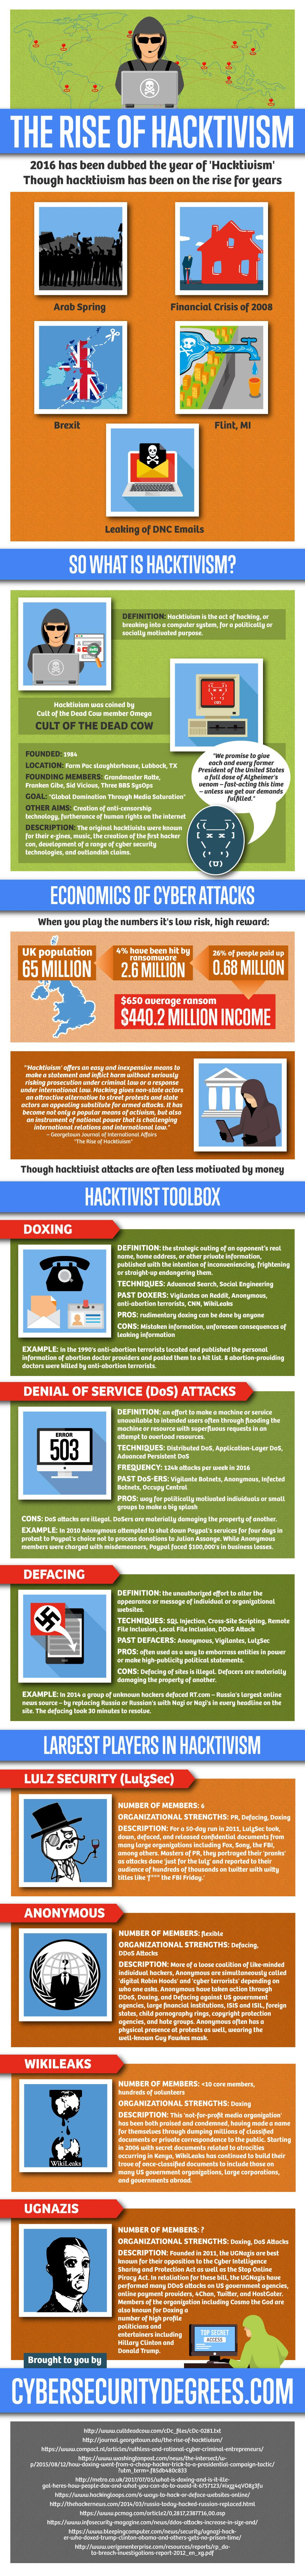 The Rise of Hacktivism [Infographic]